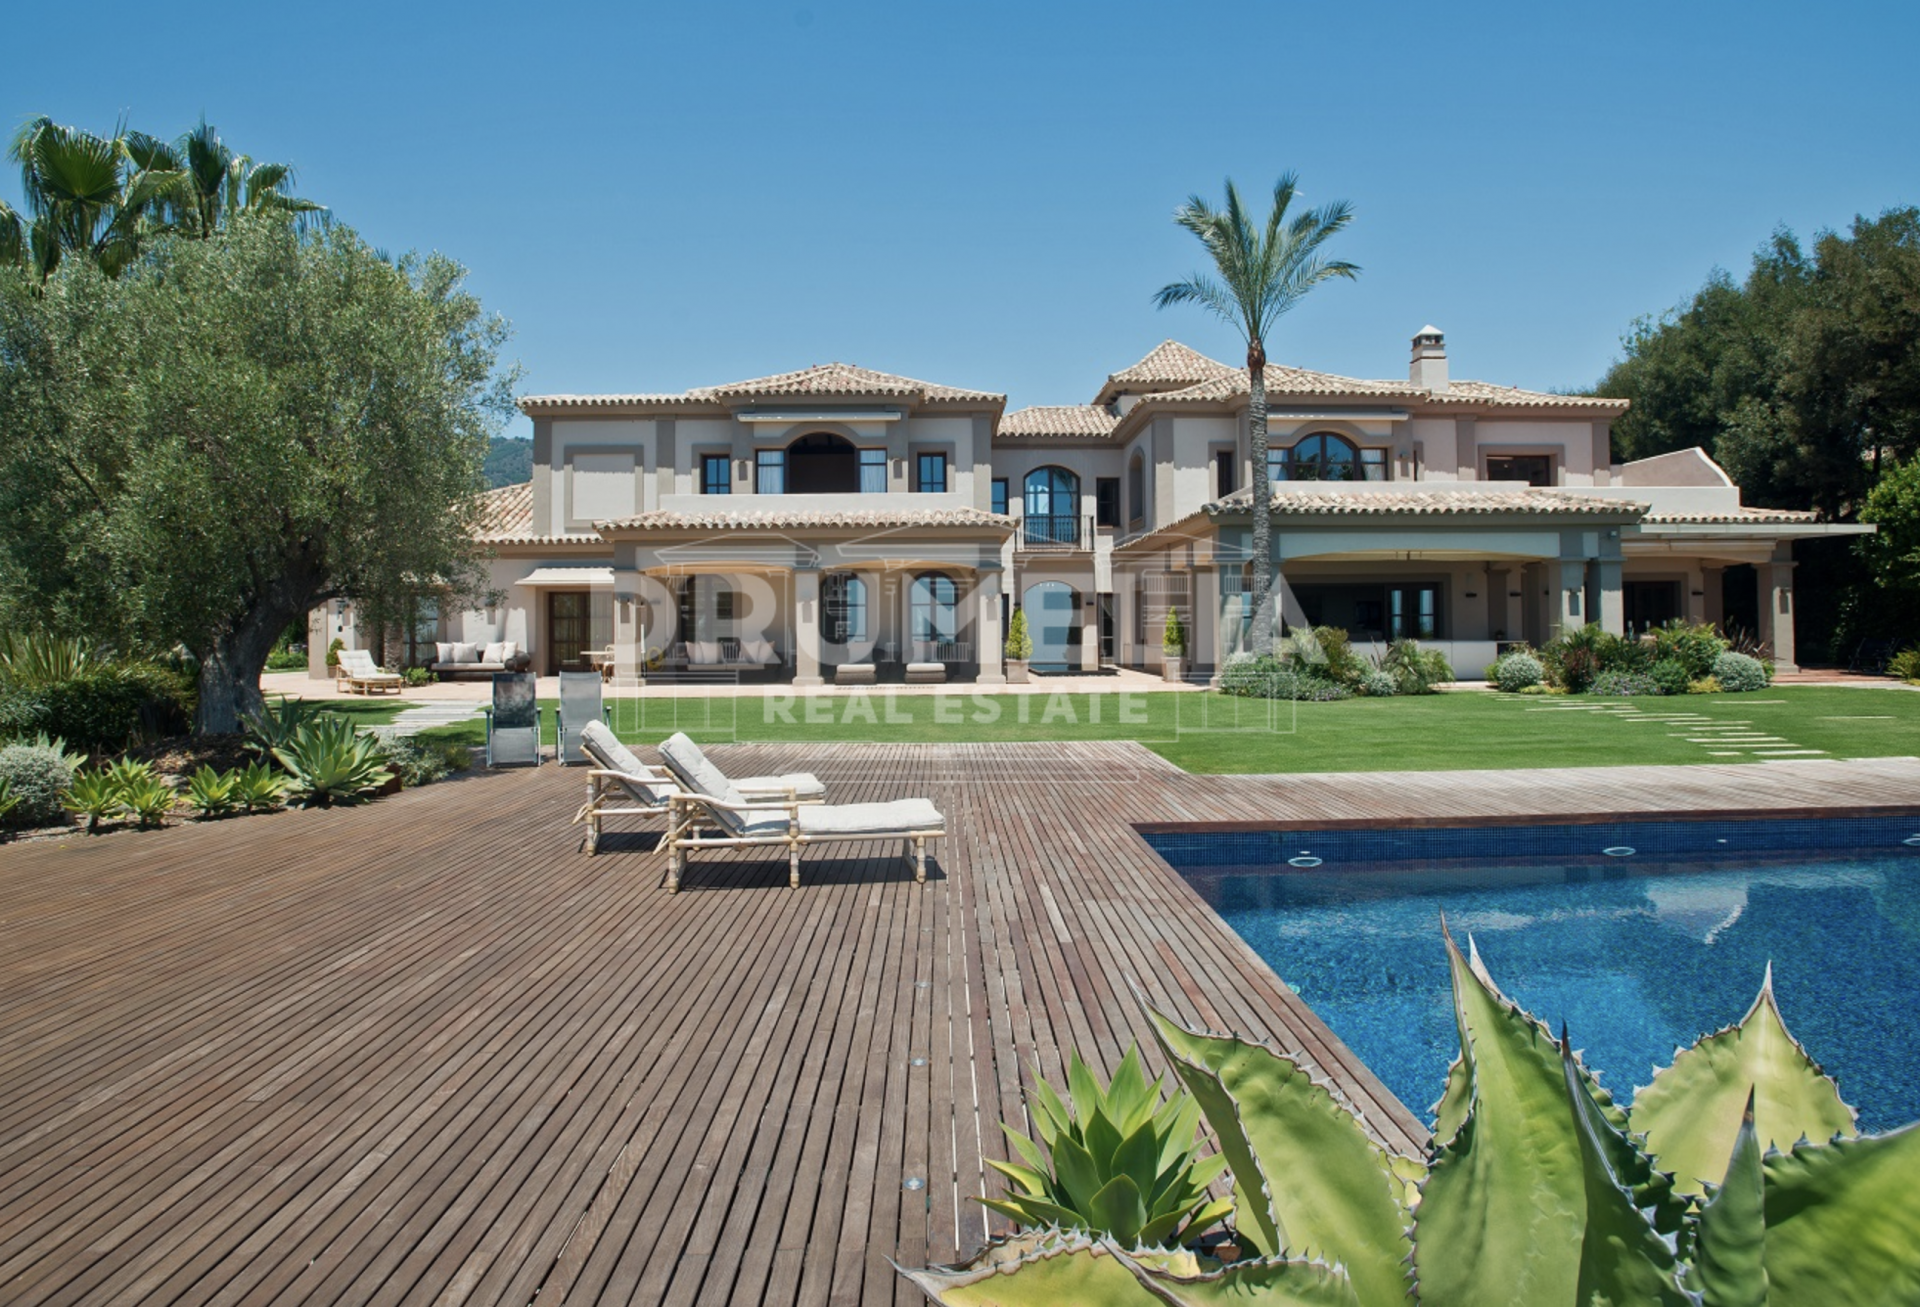 Benahavis, Stunning Classic Mediterranean Mansion with Views in Zagaleta, Benahavis.